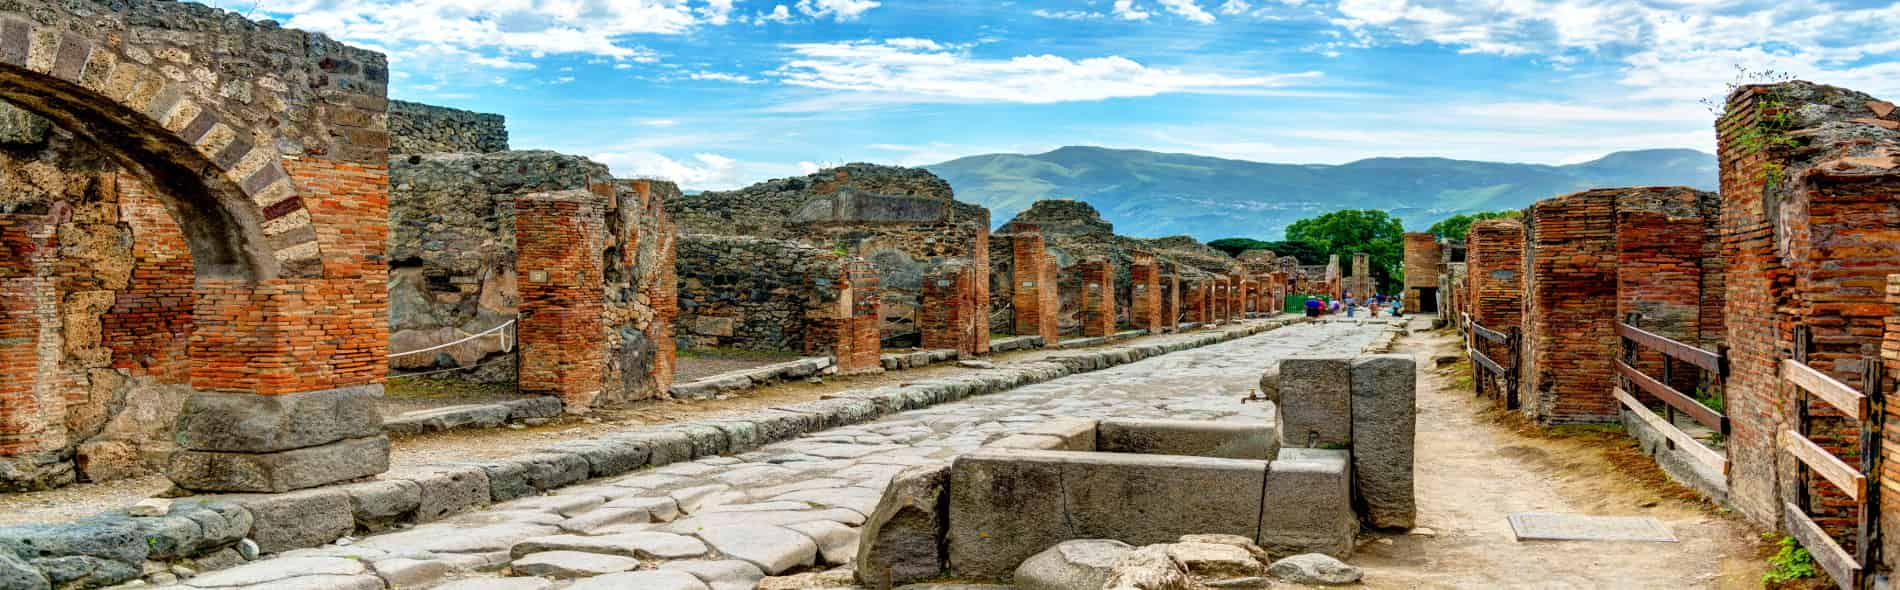 Walking Guided Tour of the Archaeological Excavations of Pompeii